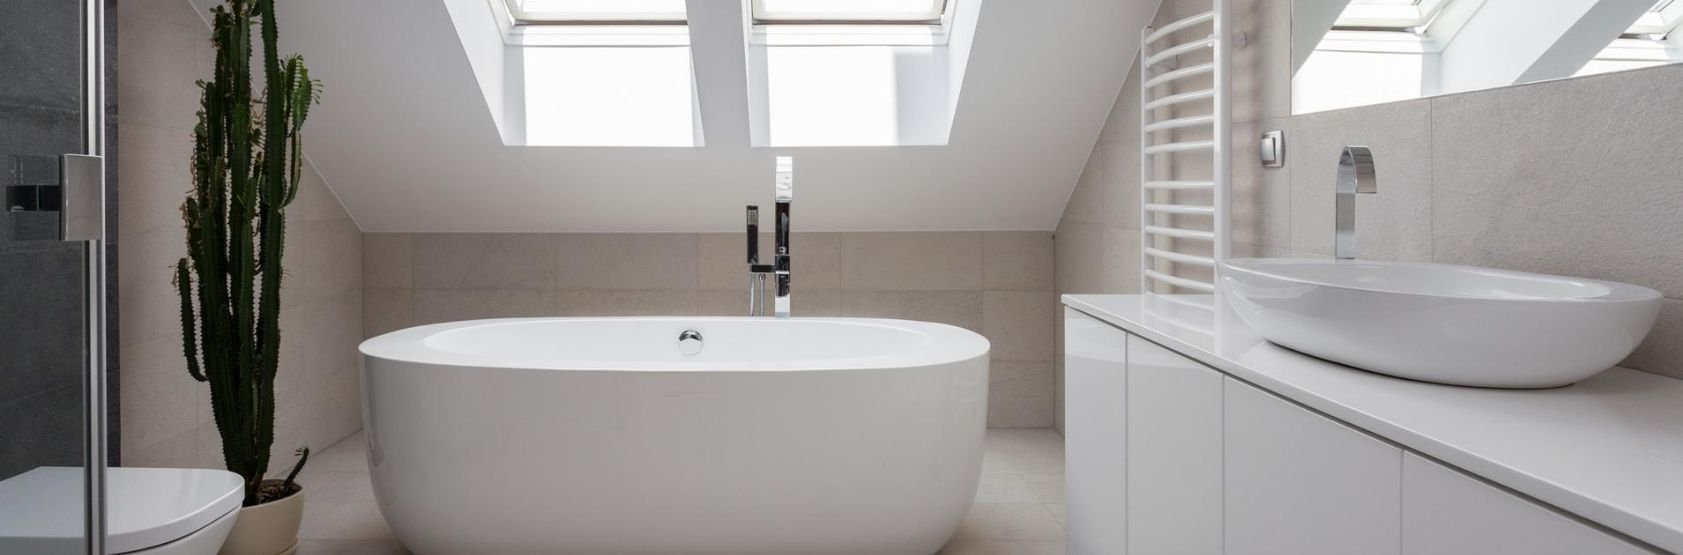 Bathroom-Fitting-Services-Dorset-Hampshire_15